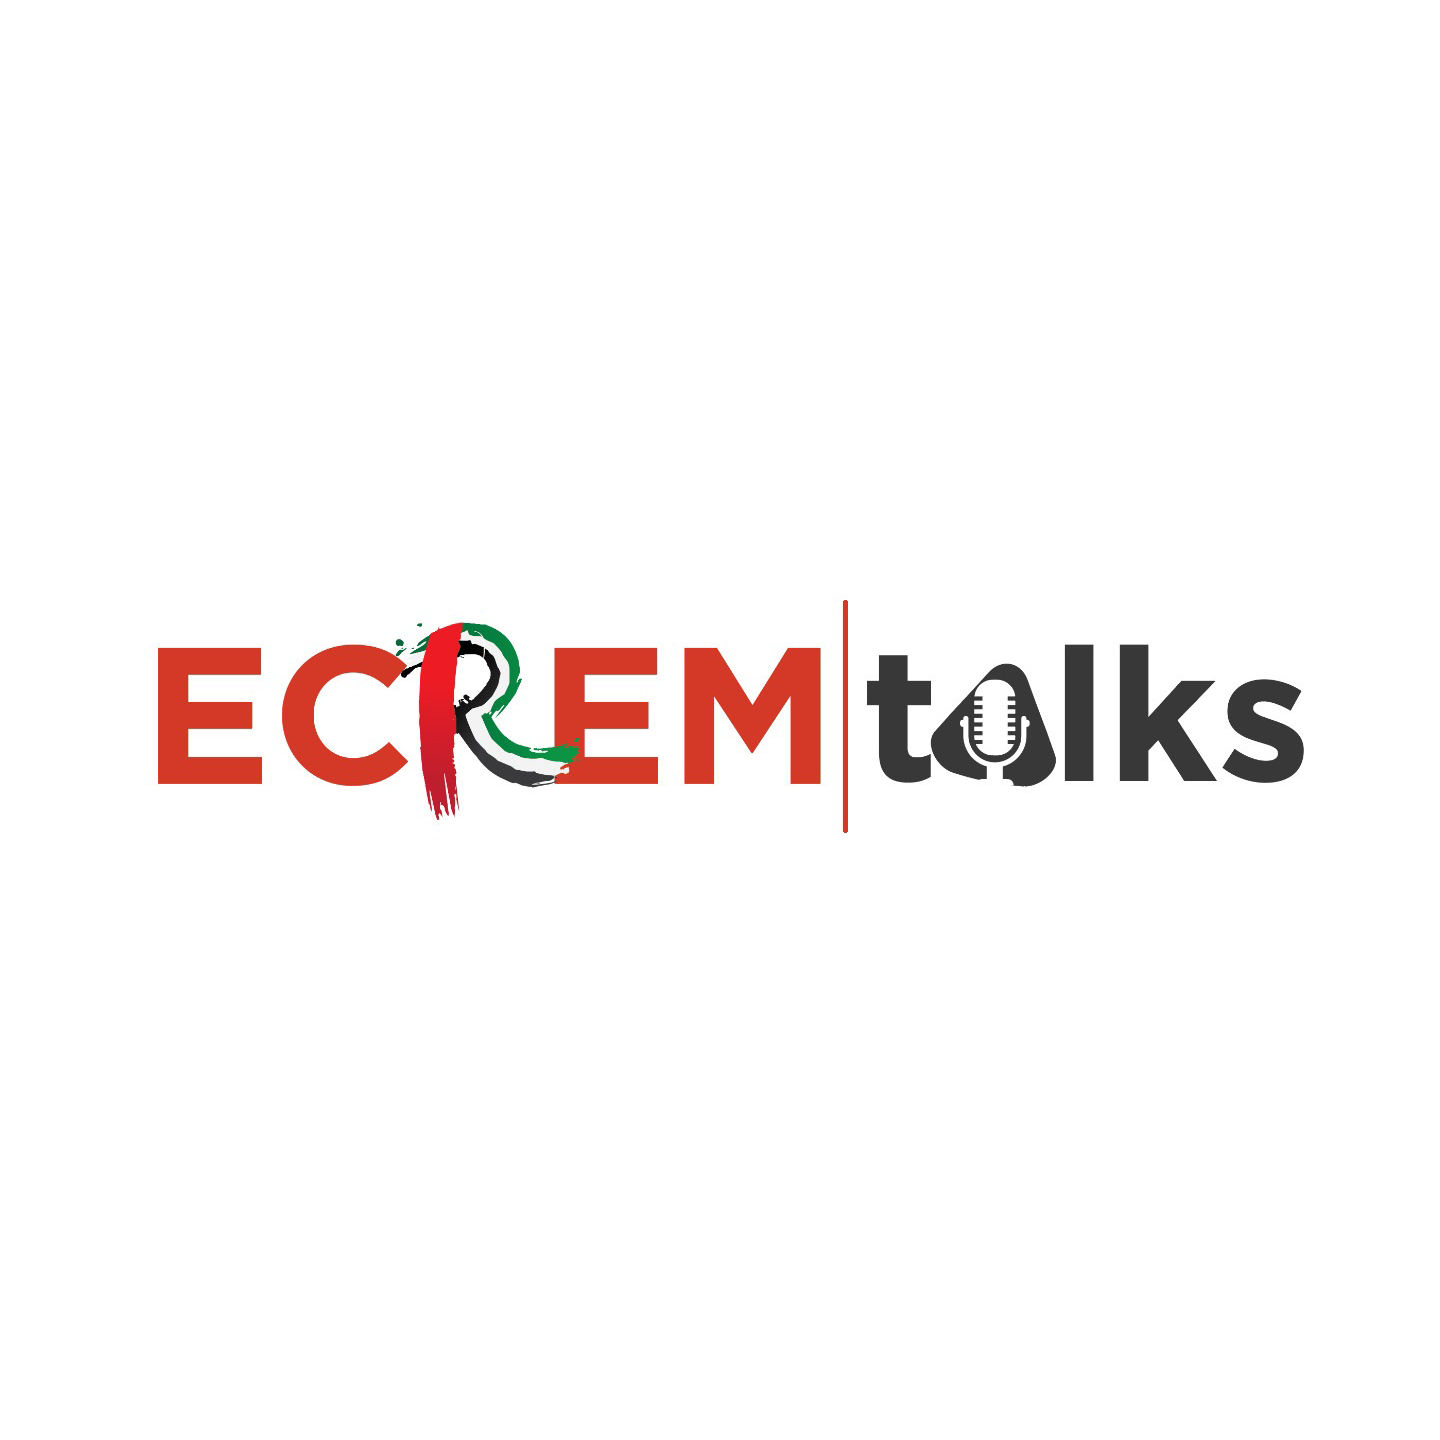 ECREM Talks